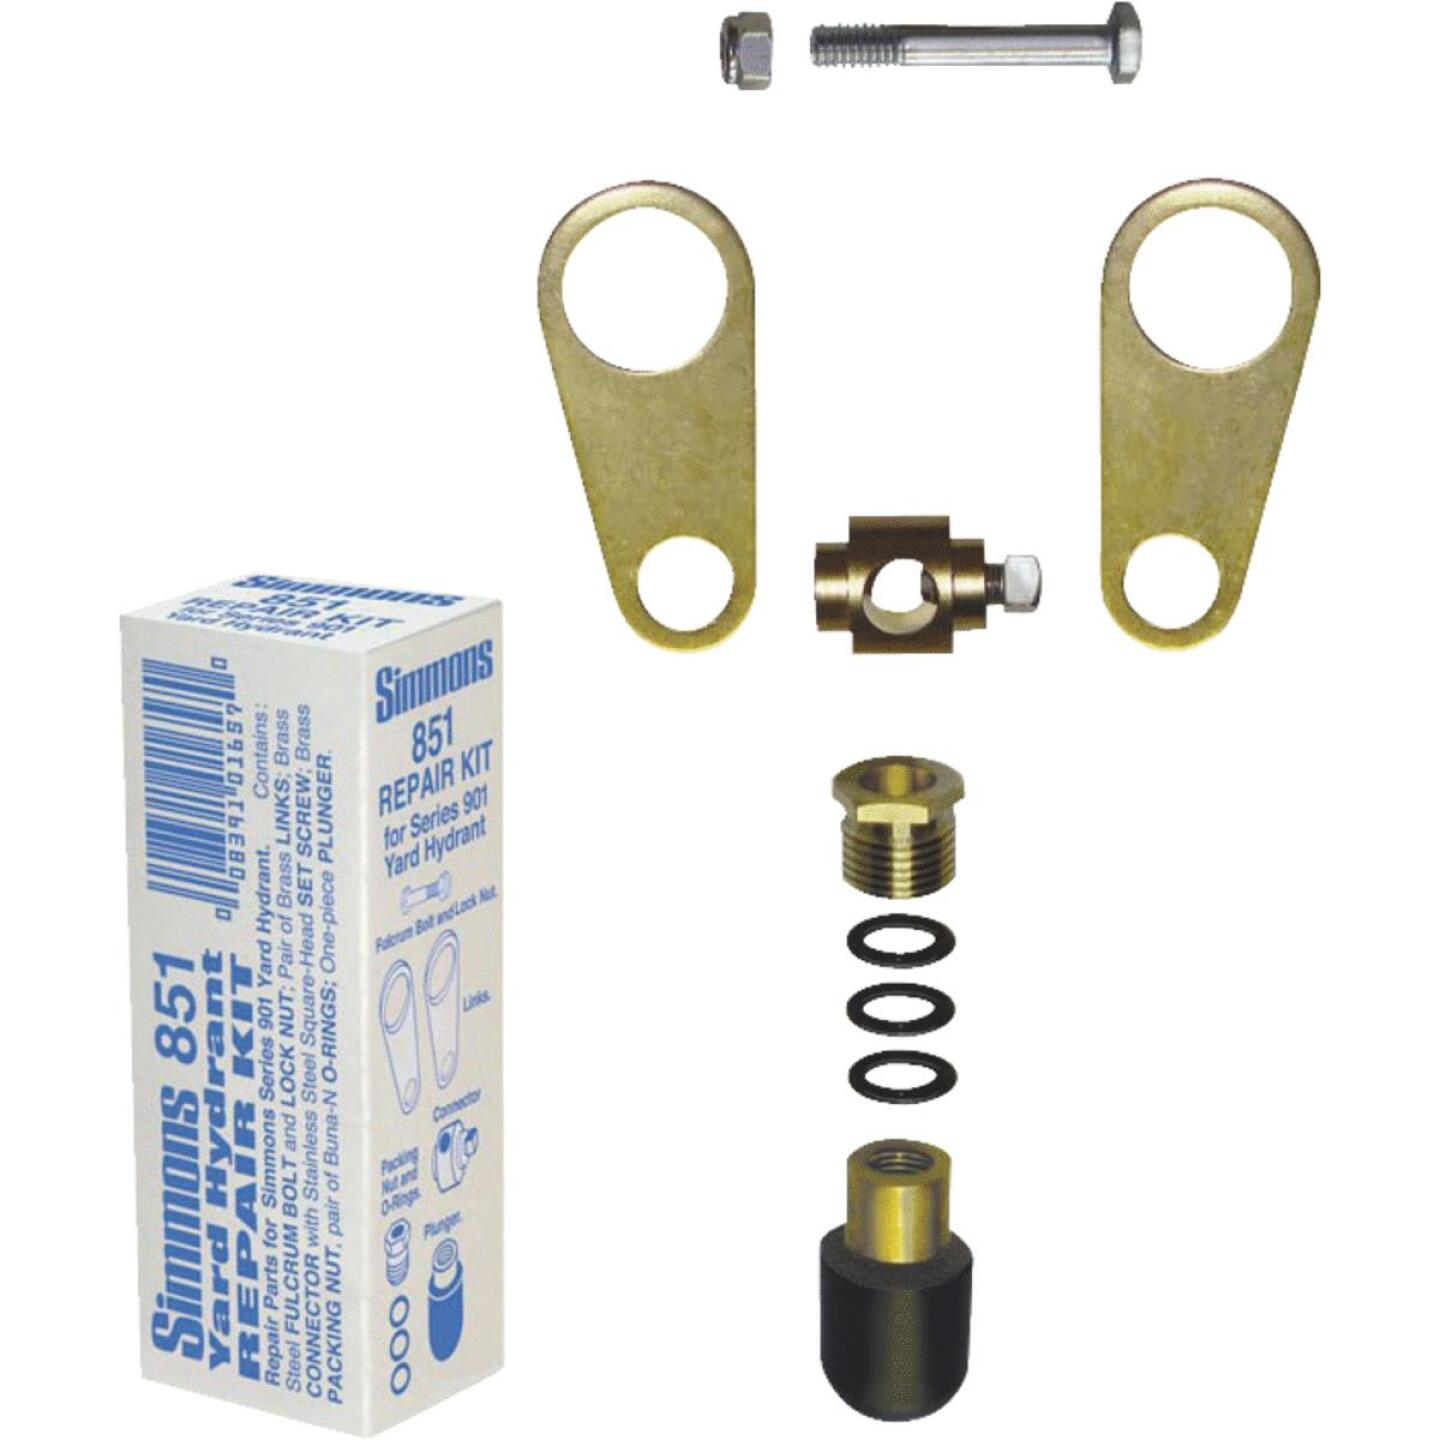 Simmons 900 Series Hydrant Repair Kit Image 1